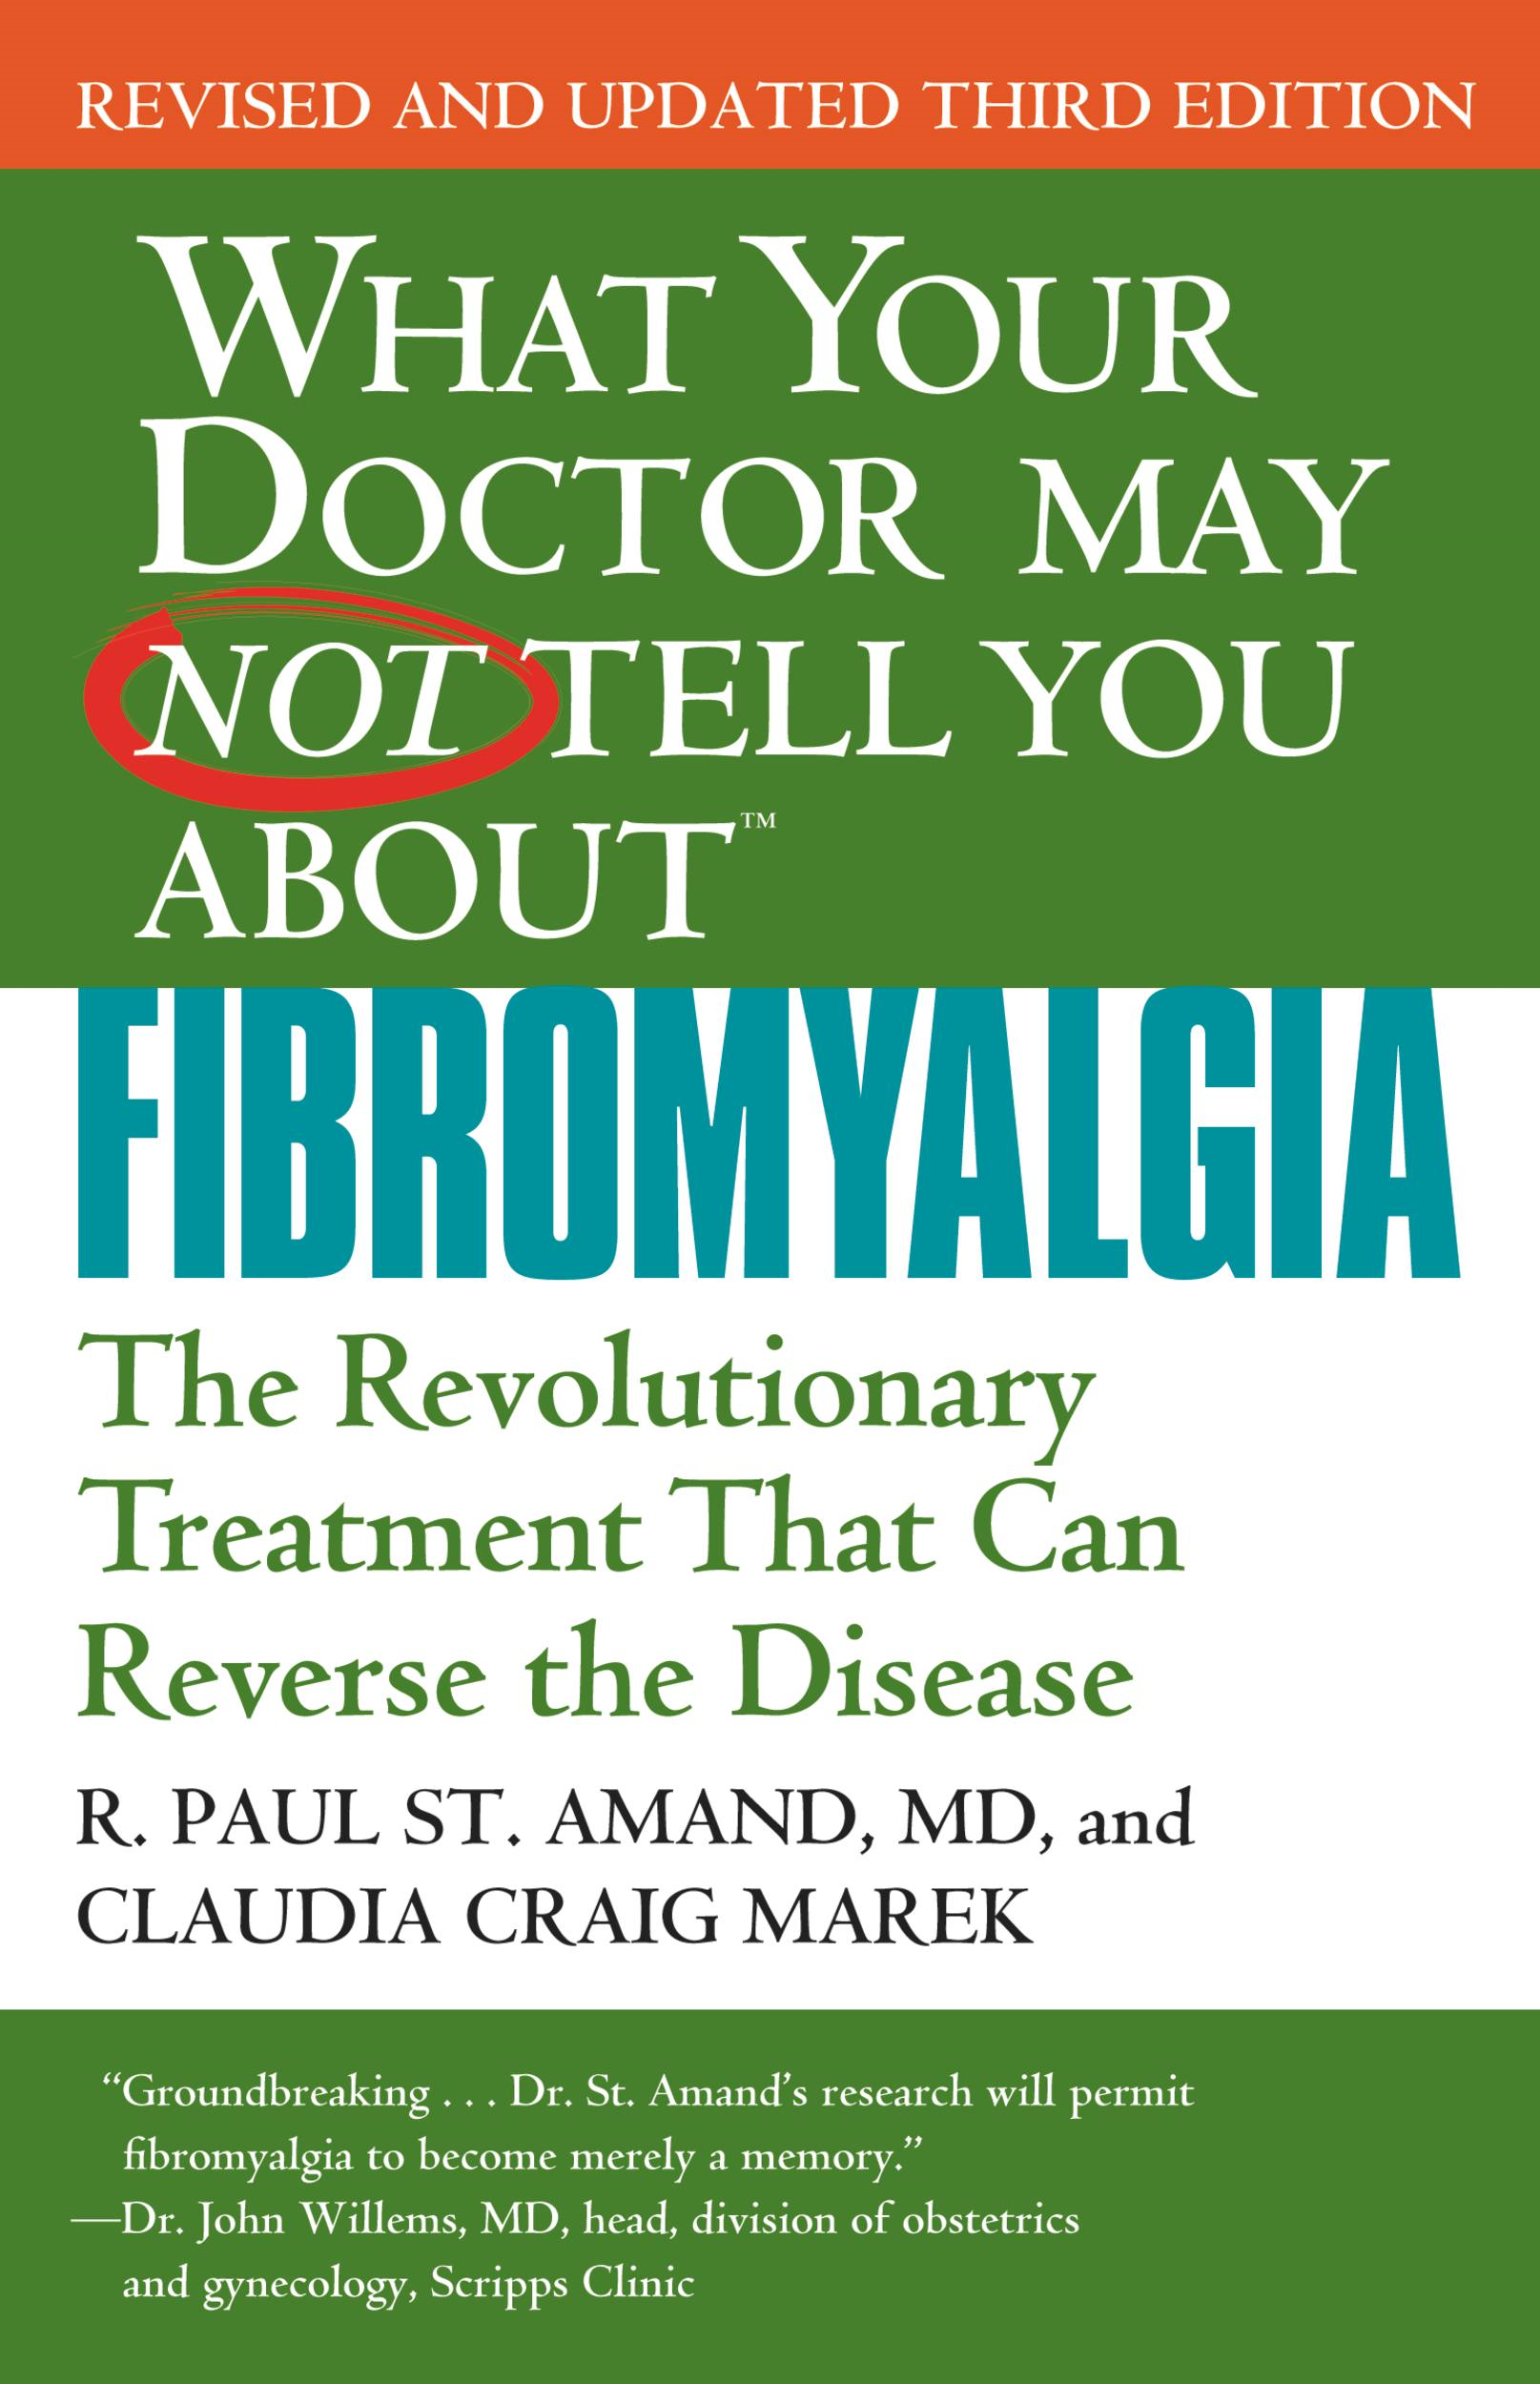 What Your Doctor May Not Tell You About Fibromyalgia By: Claudia Craig Marek,R. Paul St. Amand